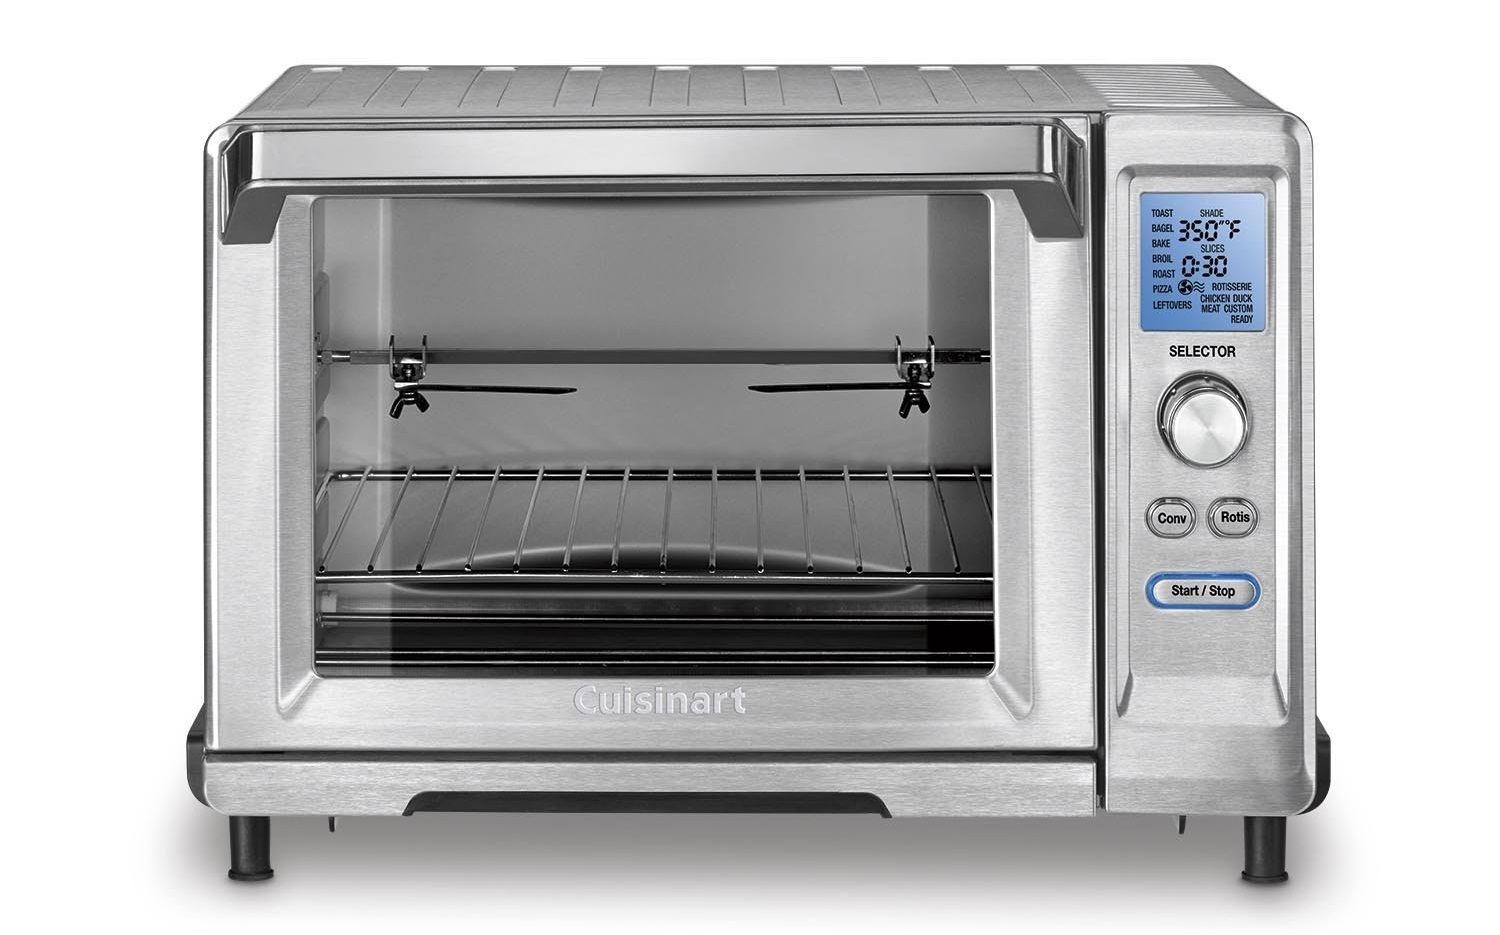 Cuisinart TOB 200 Rotisserie Toaster Oven Review